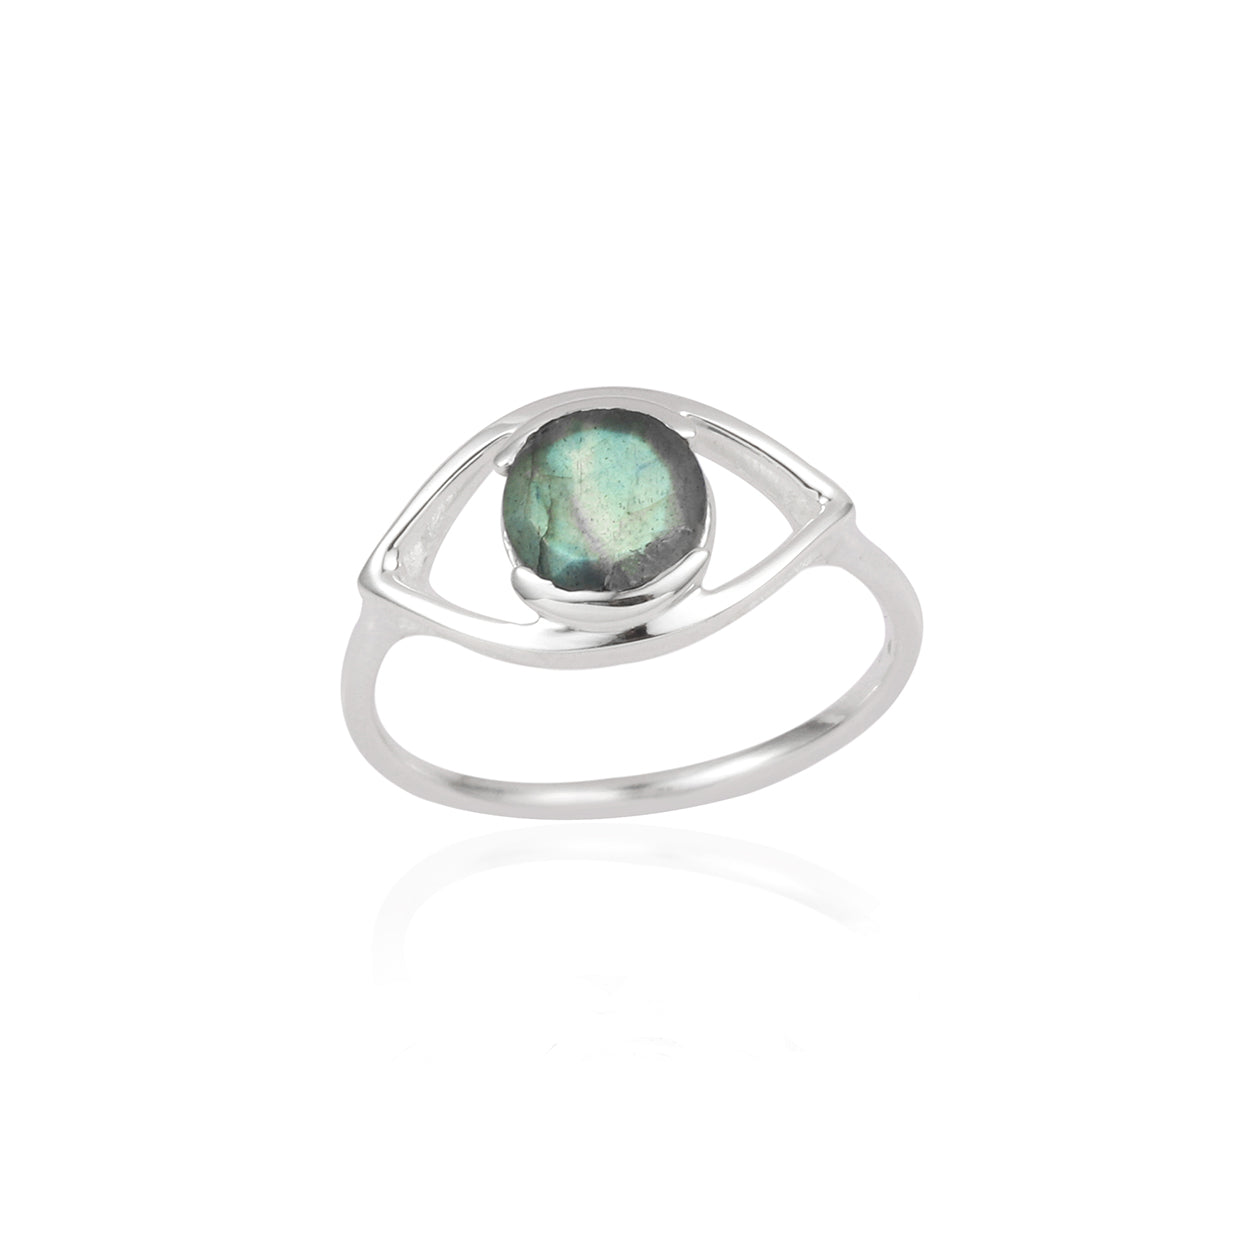 Athena's eye Ring - Talisman Collective